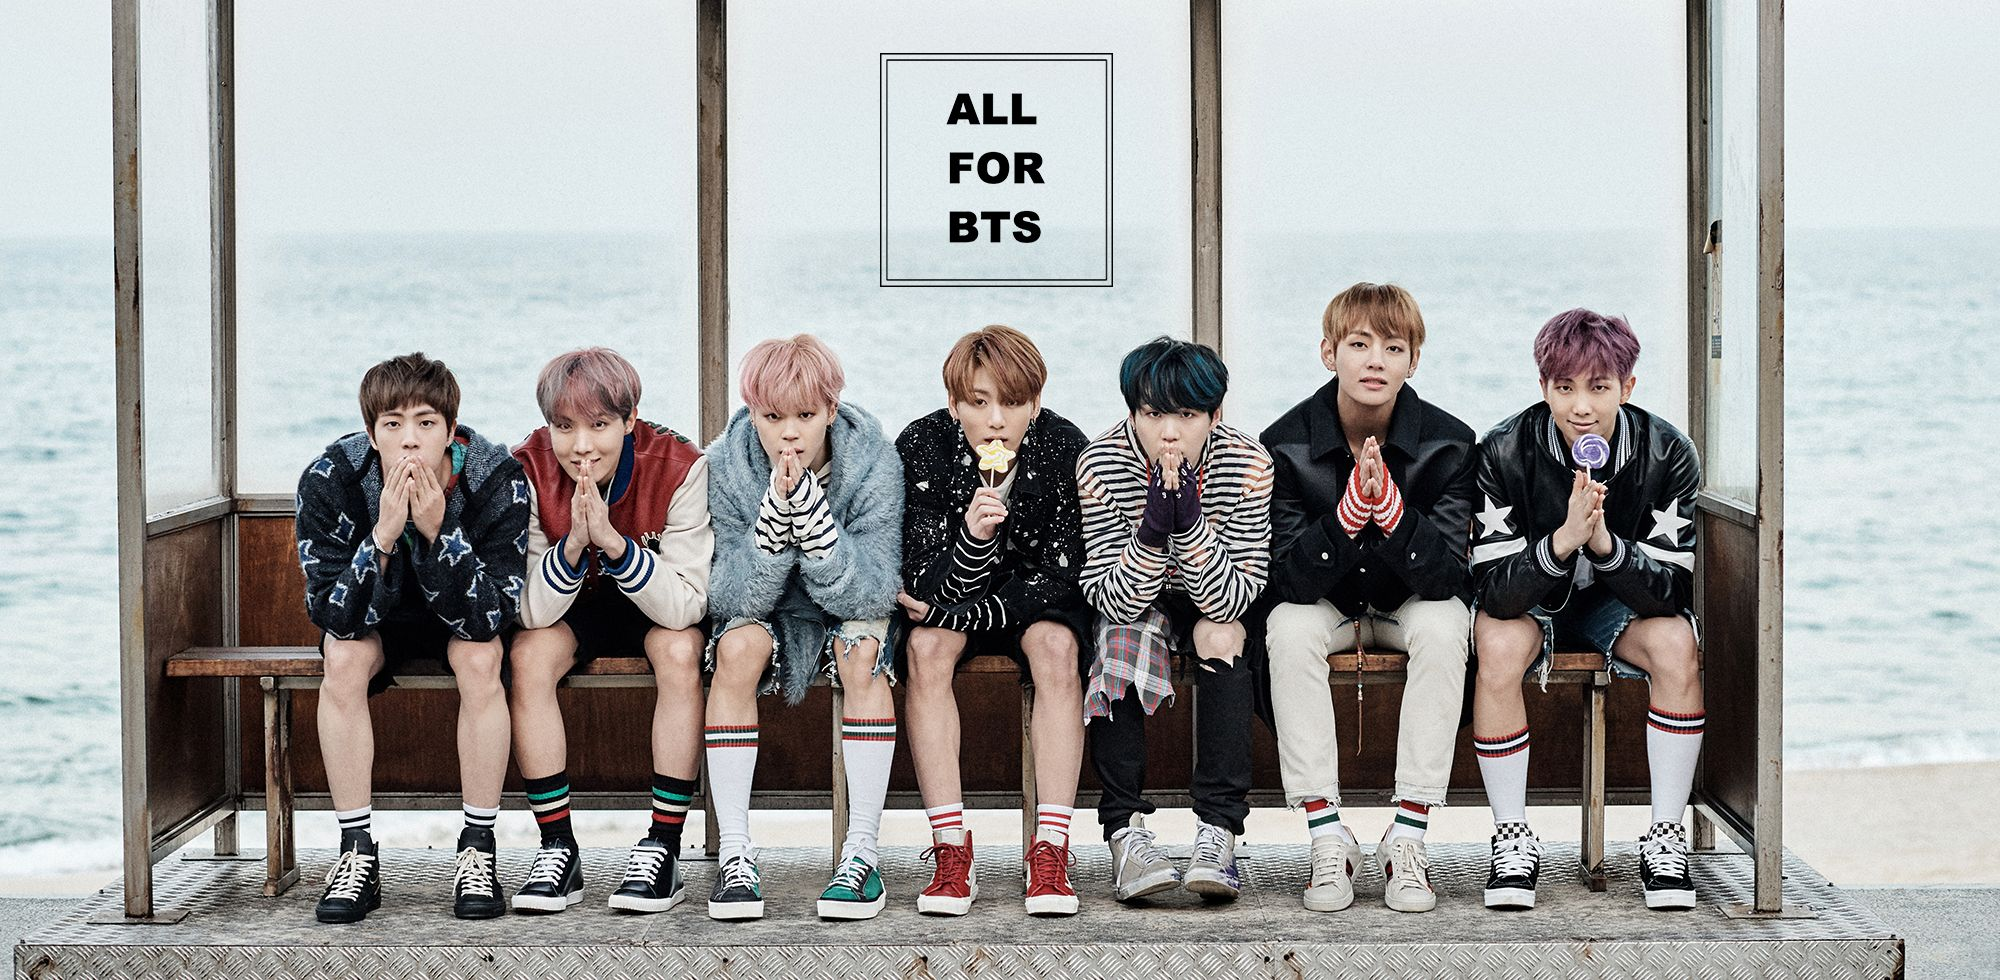 Pin By Jiayun On Bts Bts Spring Day Bts Not Today Bts Wallpaper